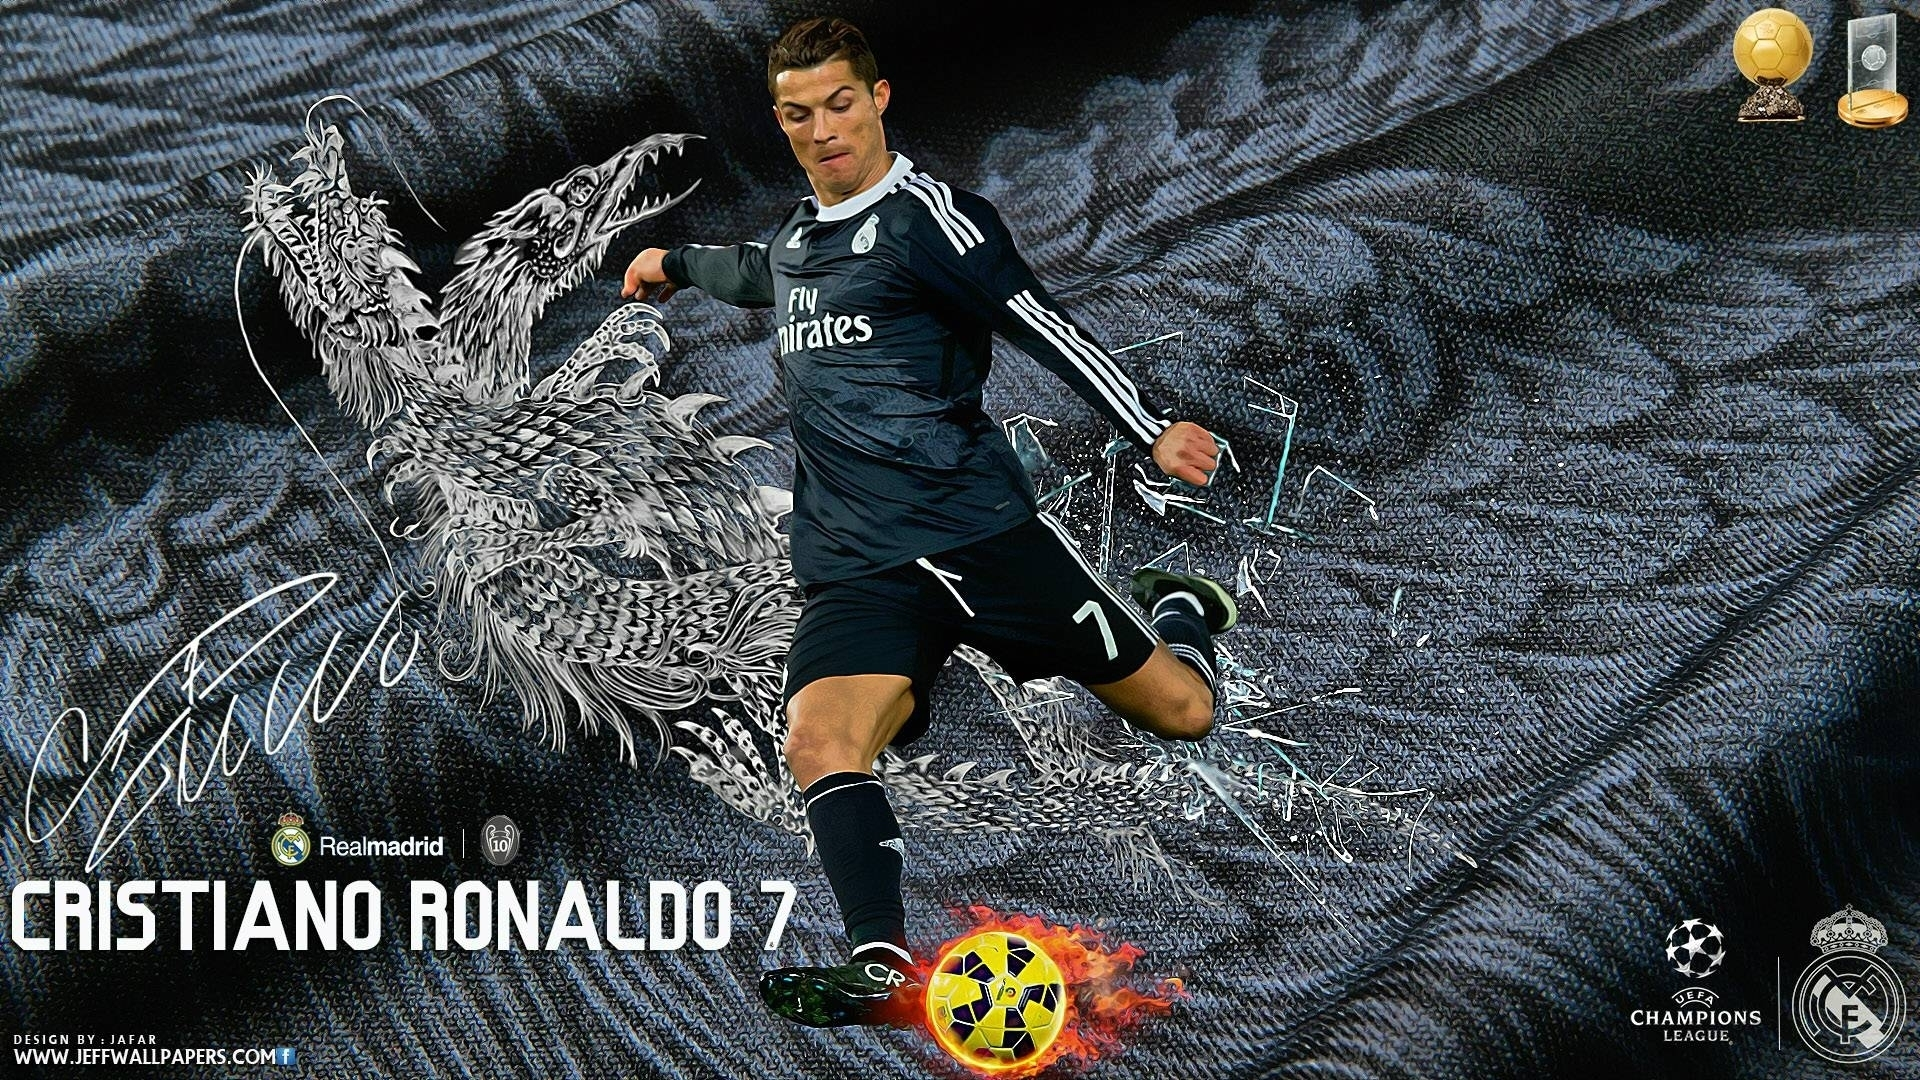 10 latest cristiano ronaldo wallpaper 2015 full hd 1080p for pc